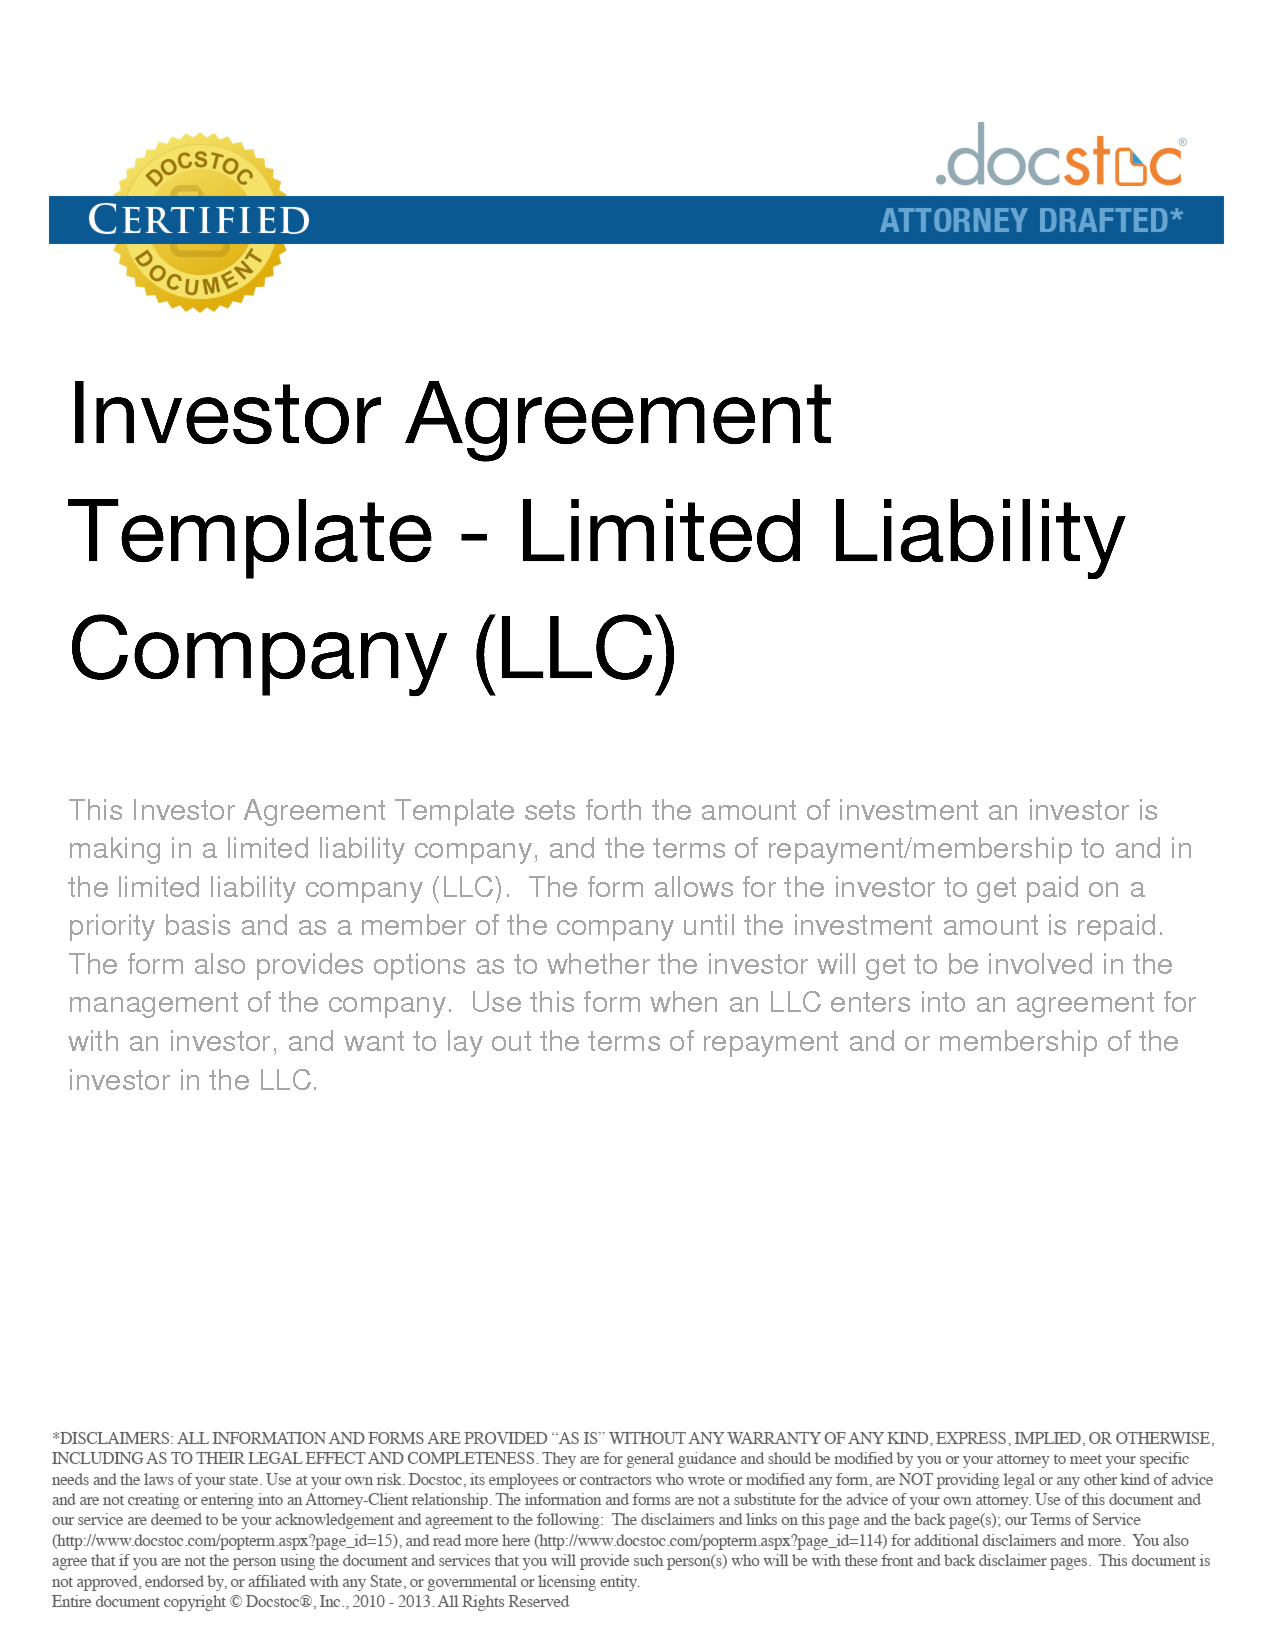 investor agreement template limited liability company llc